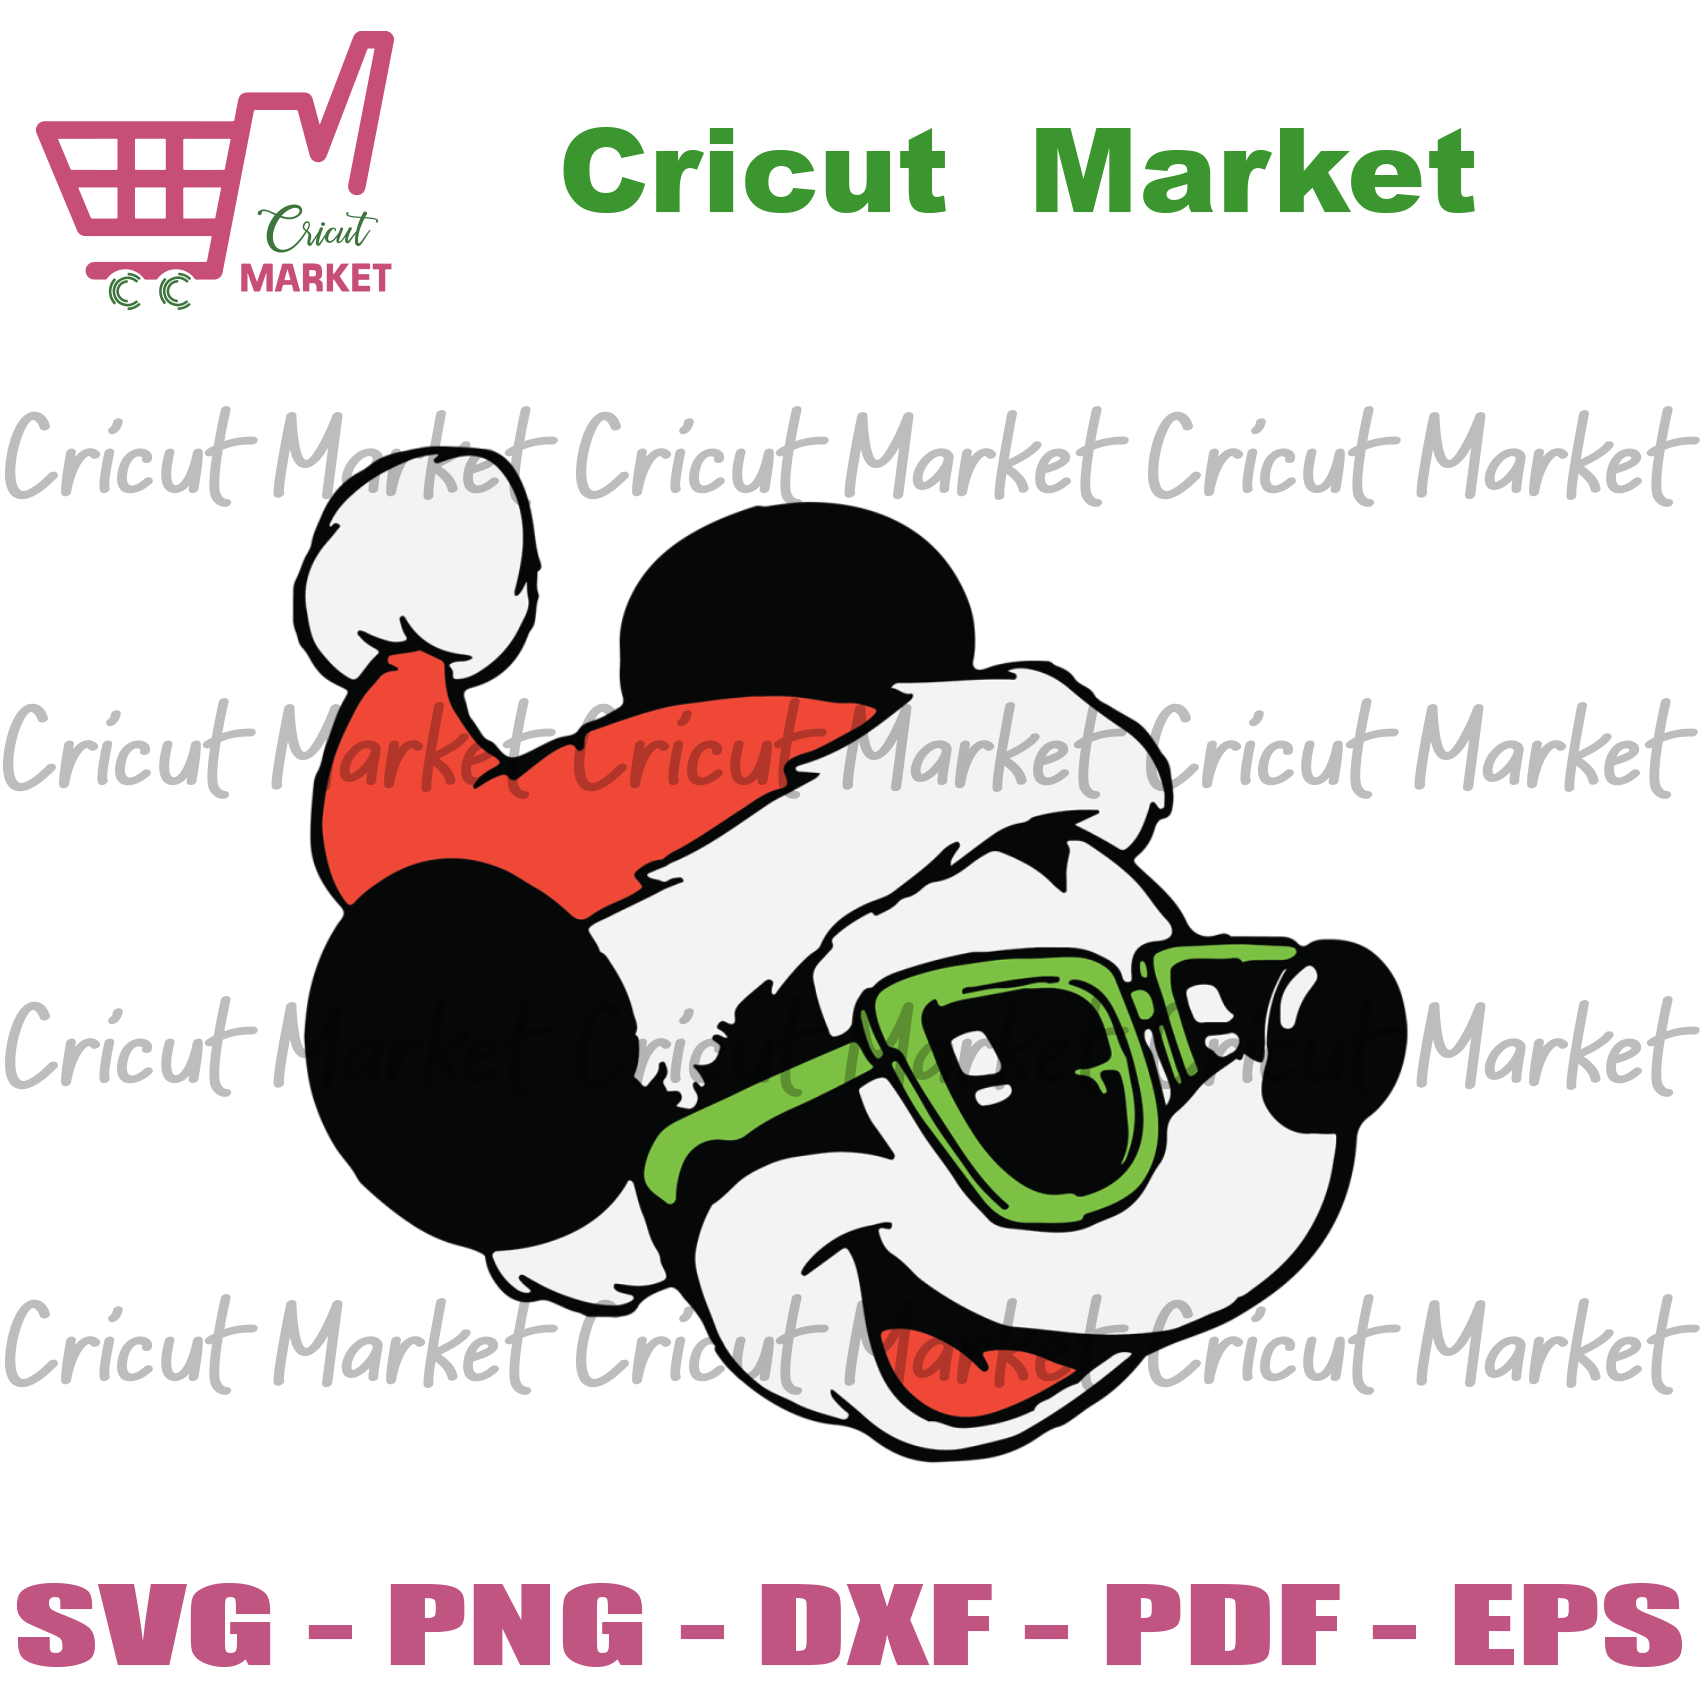 Cool Christmas Mickey, Christmas Svg, Mickey Svg, Mickey Mouse Svg, Mickey Lovers, Sunglasses Svg, Christmas Gifts, Merry Christmas, Christmas Holiday, Christmas Party, Funny Christmas, Xmas